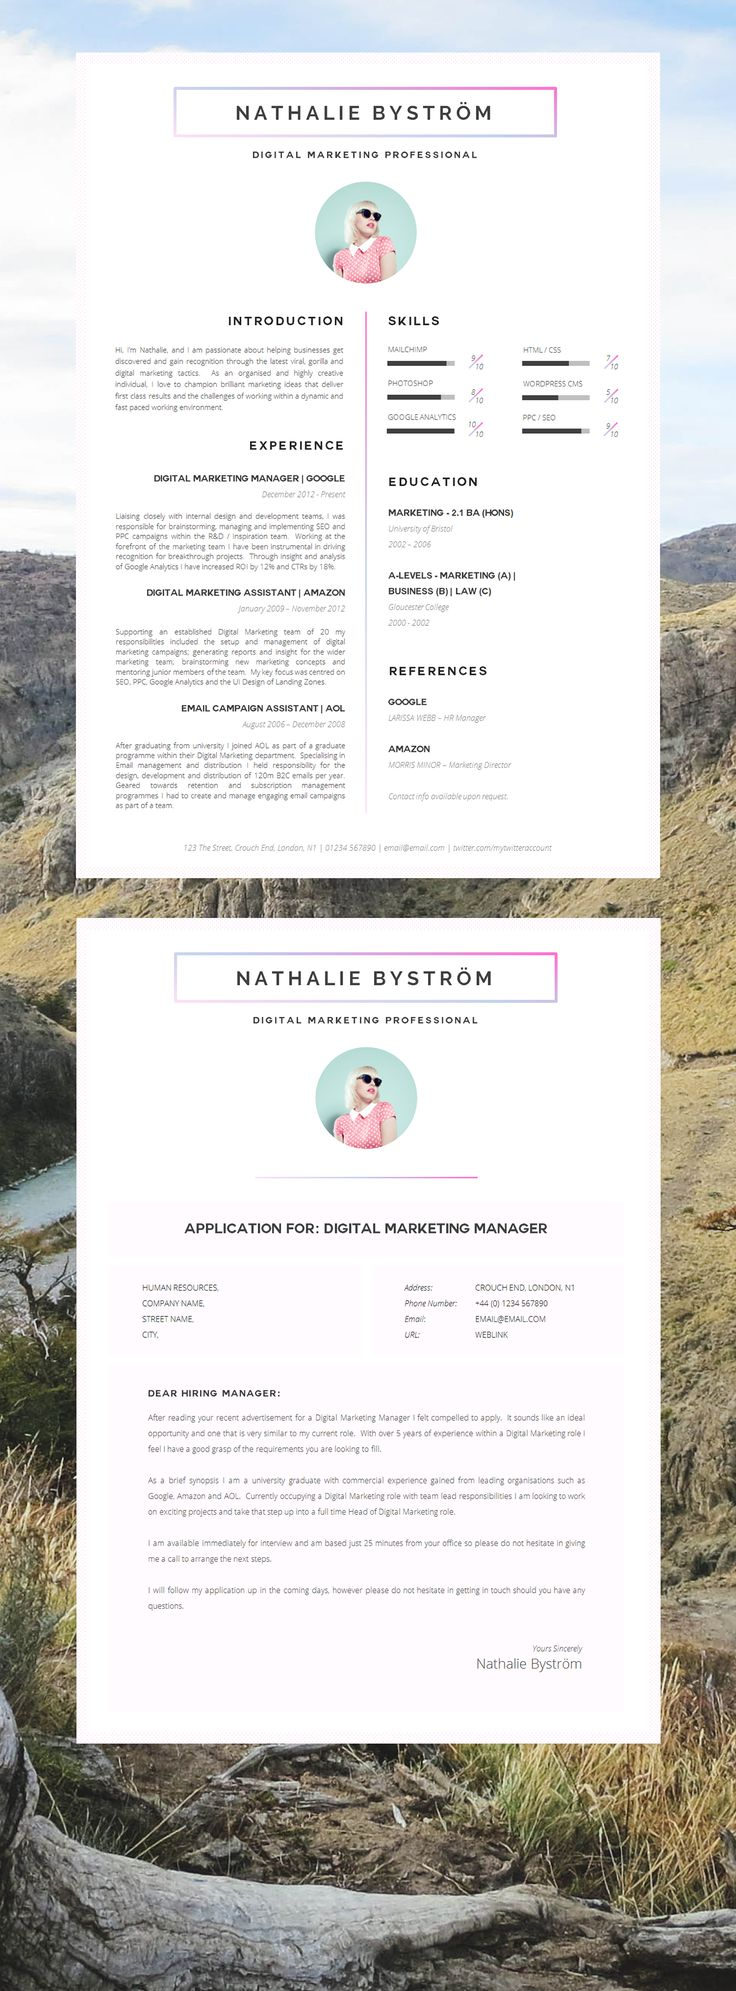 CV Template | Résumé Template for Word + Cover Letter + Advice | 1 & 2 Page CV…                                                                                                                                                                                 More